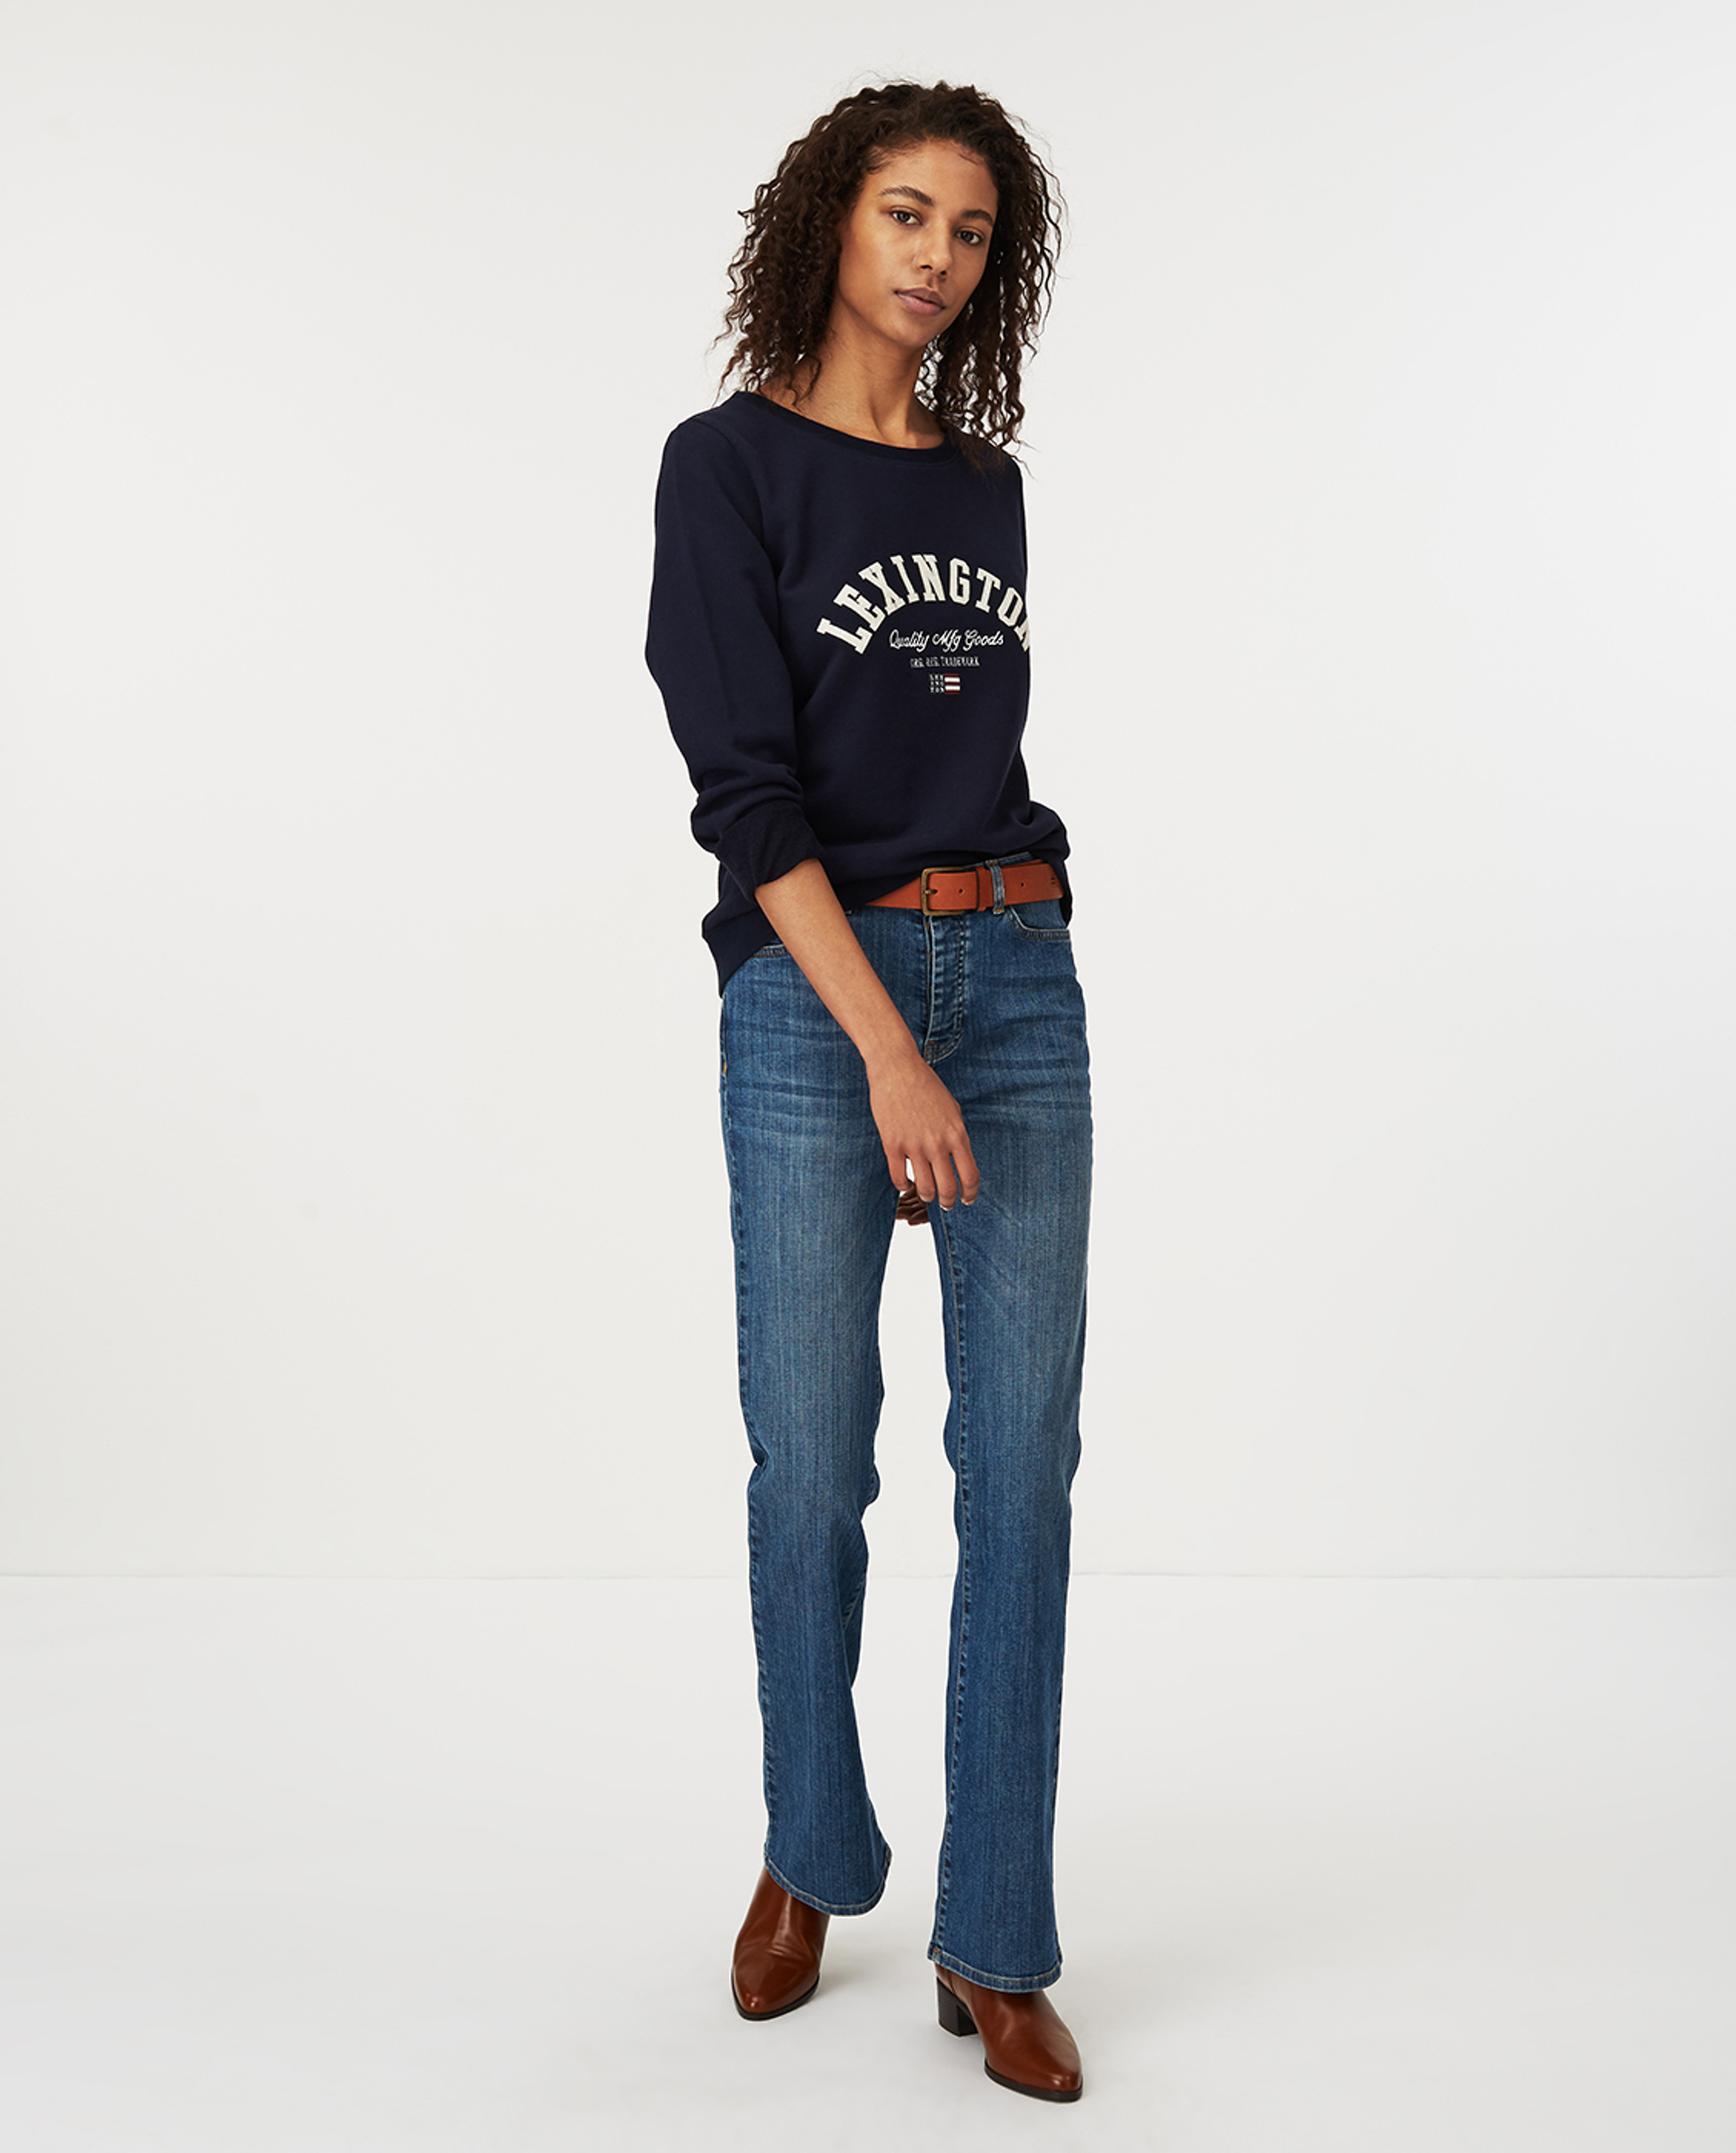 Chanice Sweatshirt, Dark Blue